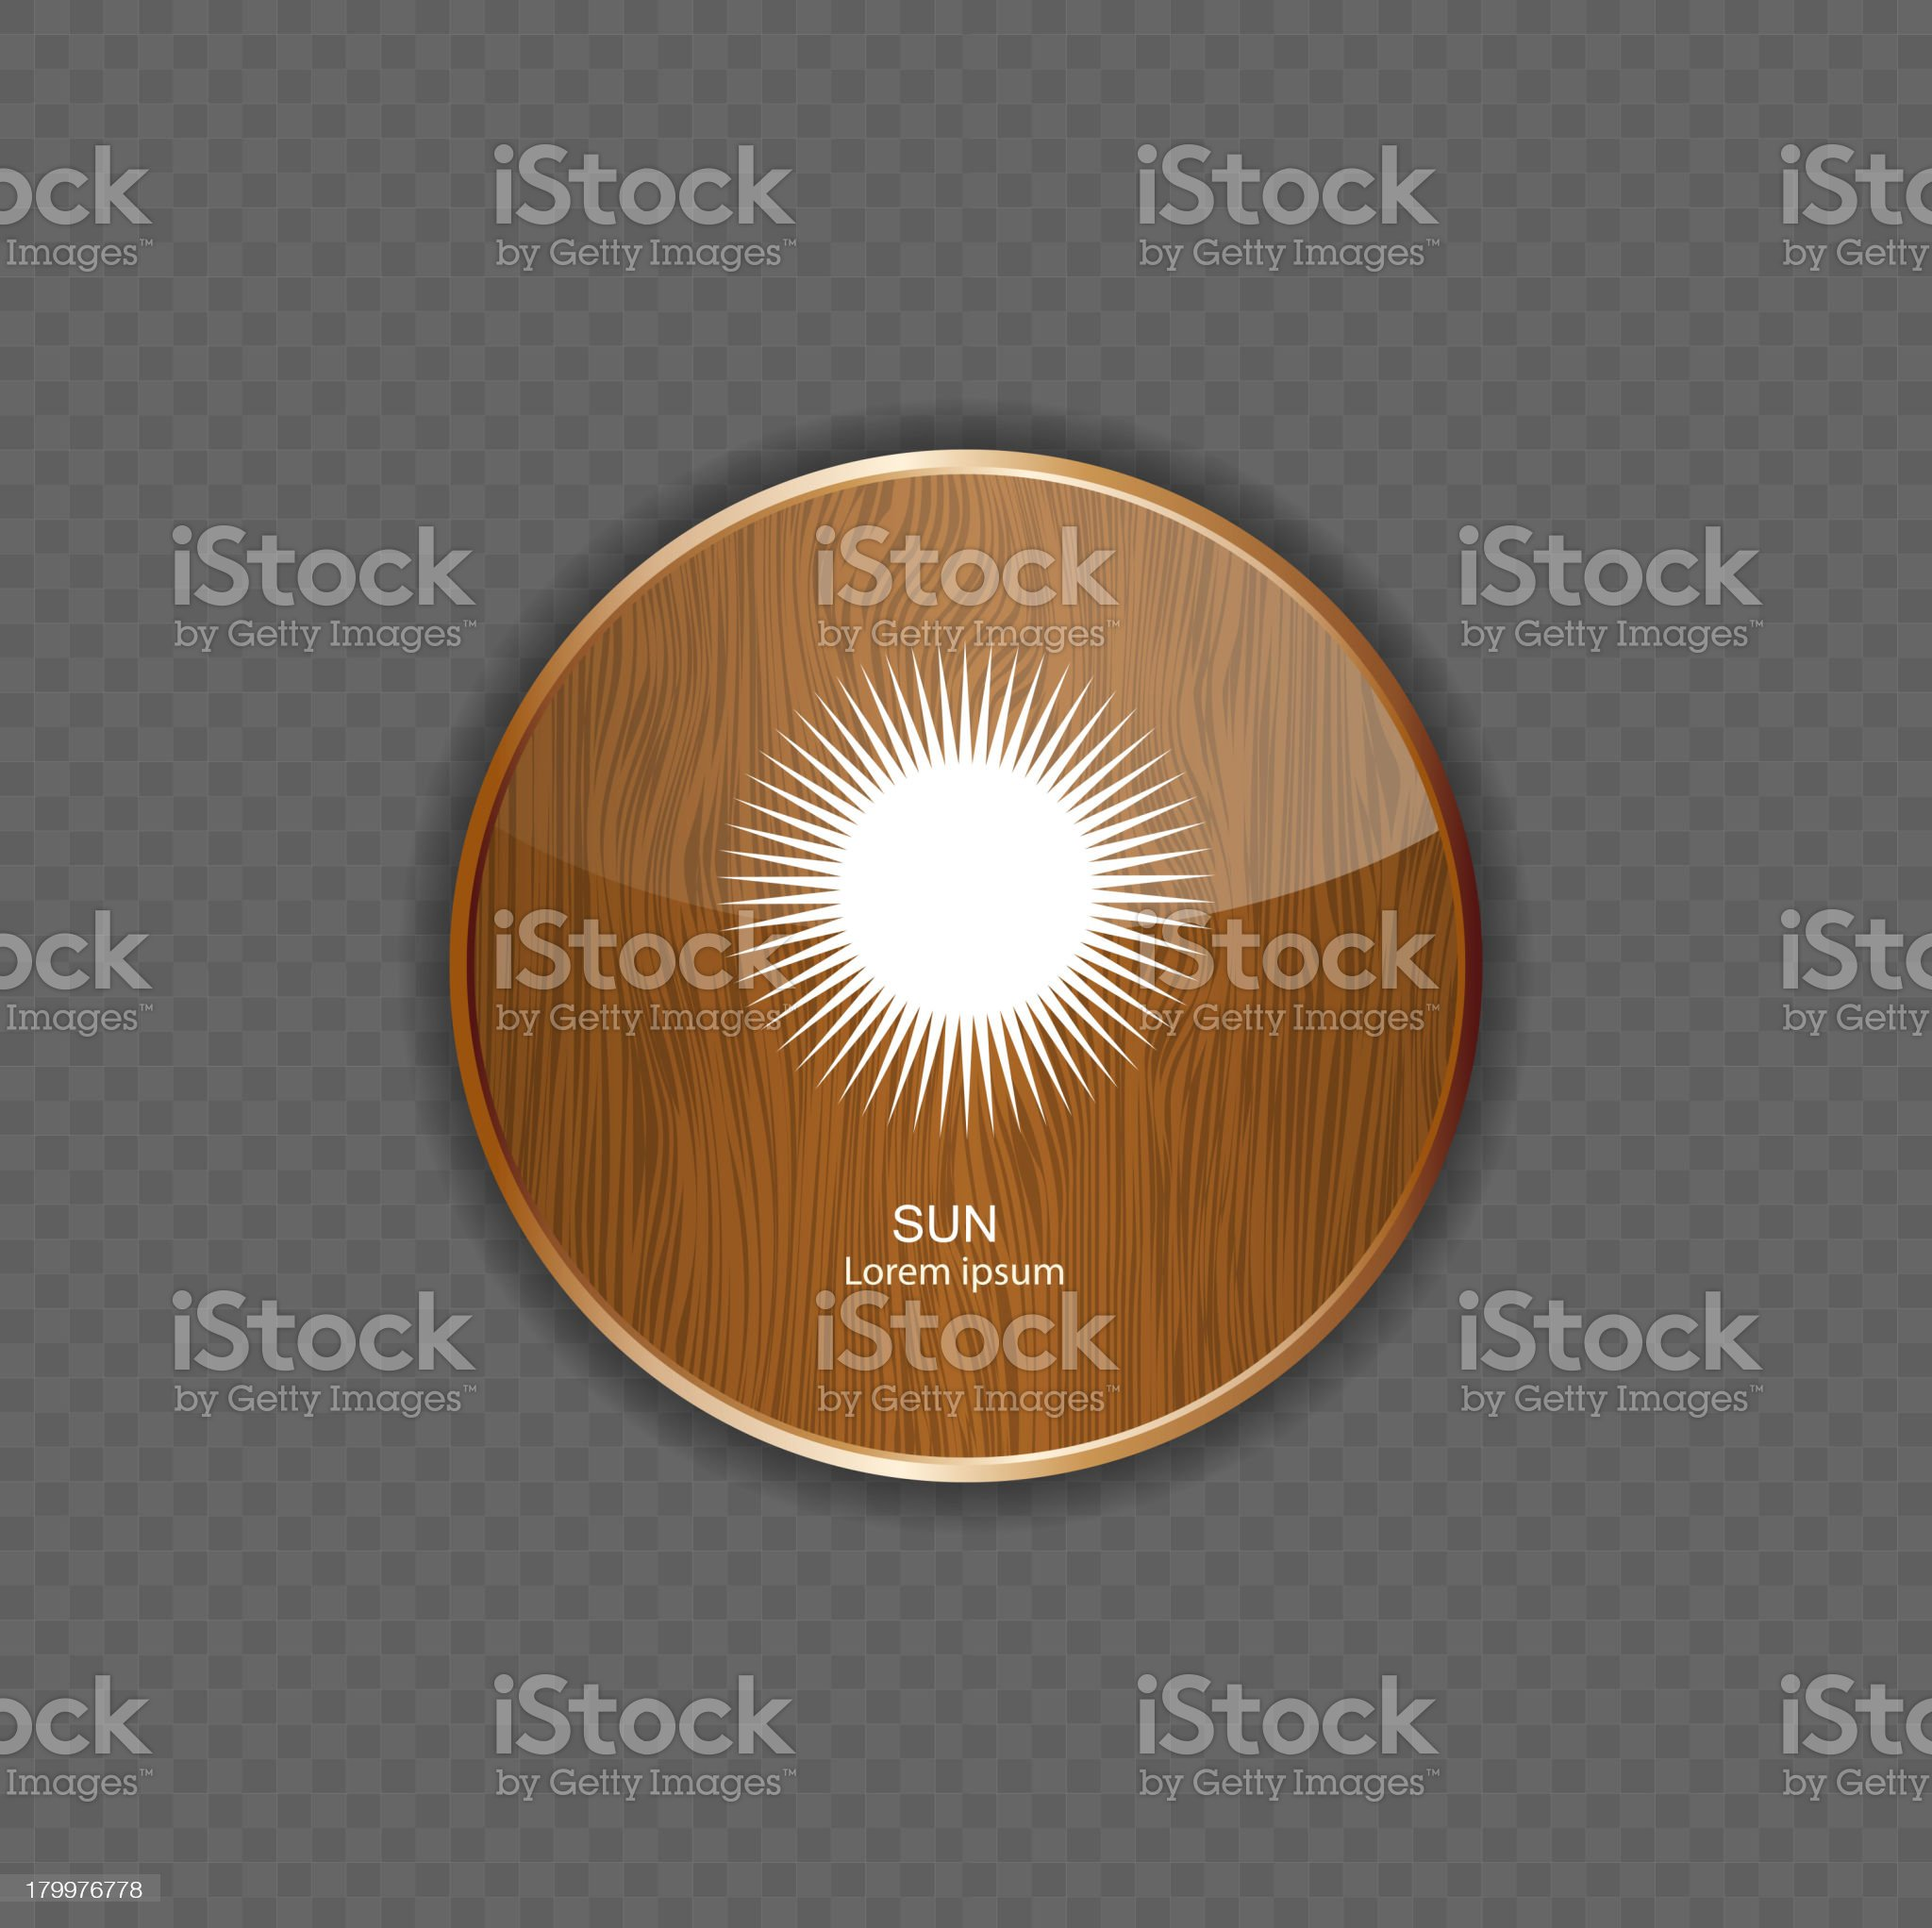 Sun wood application icons royalty-free stock vector art